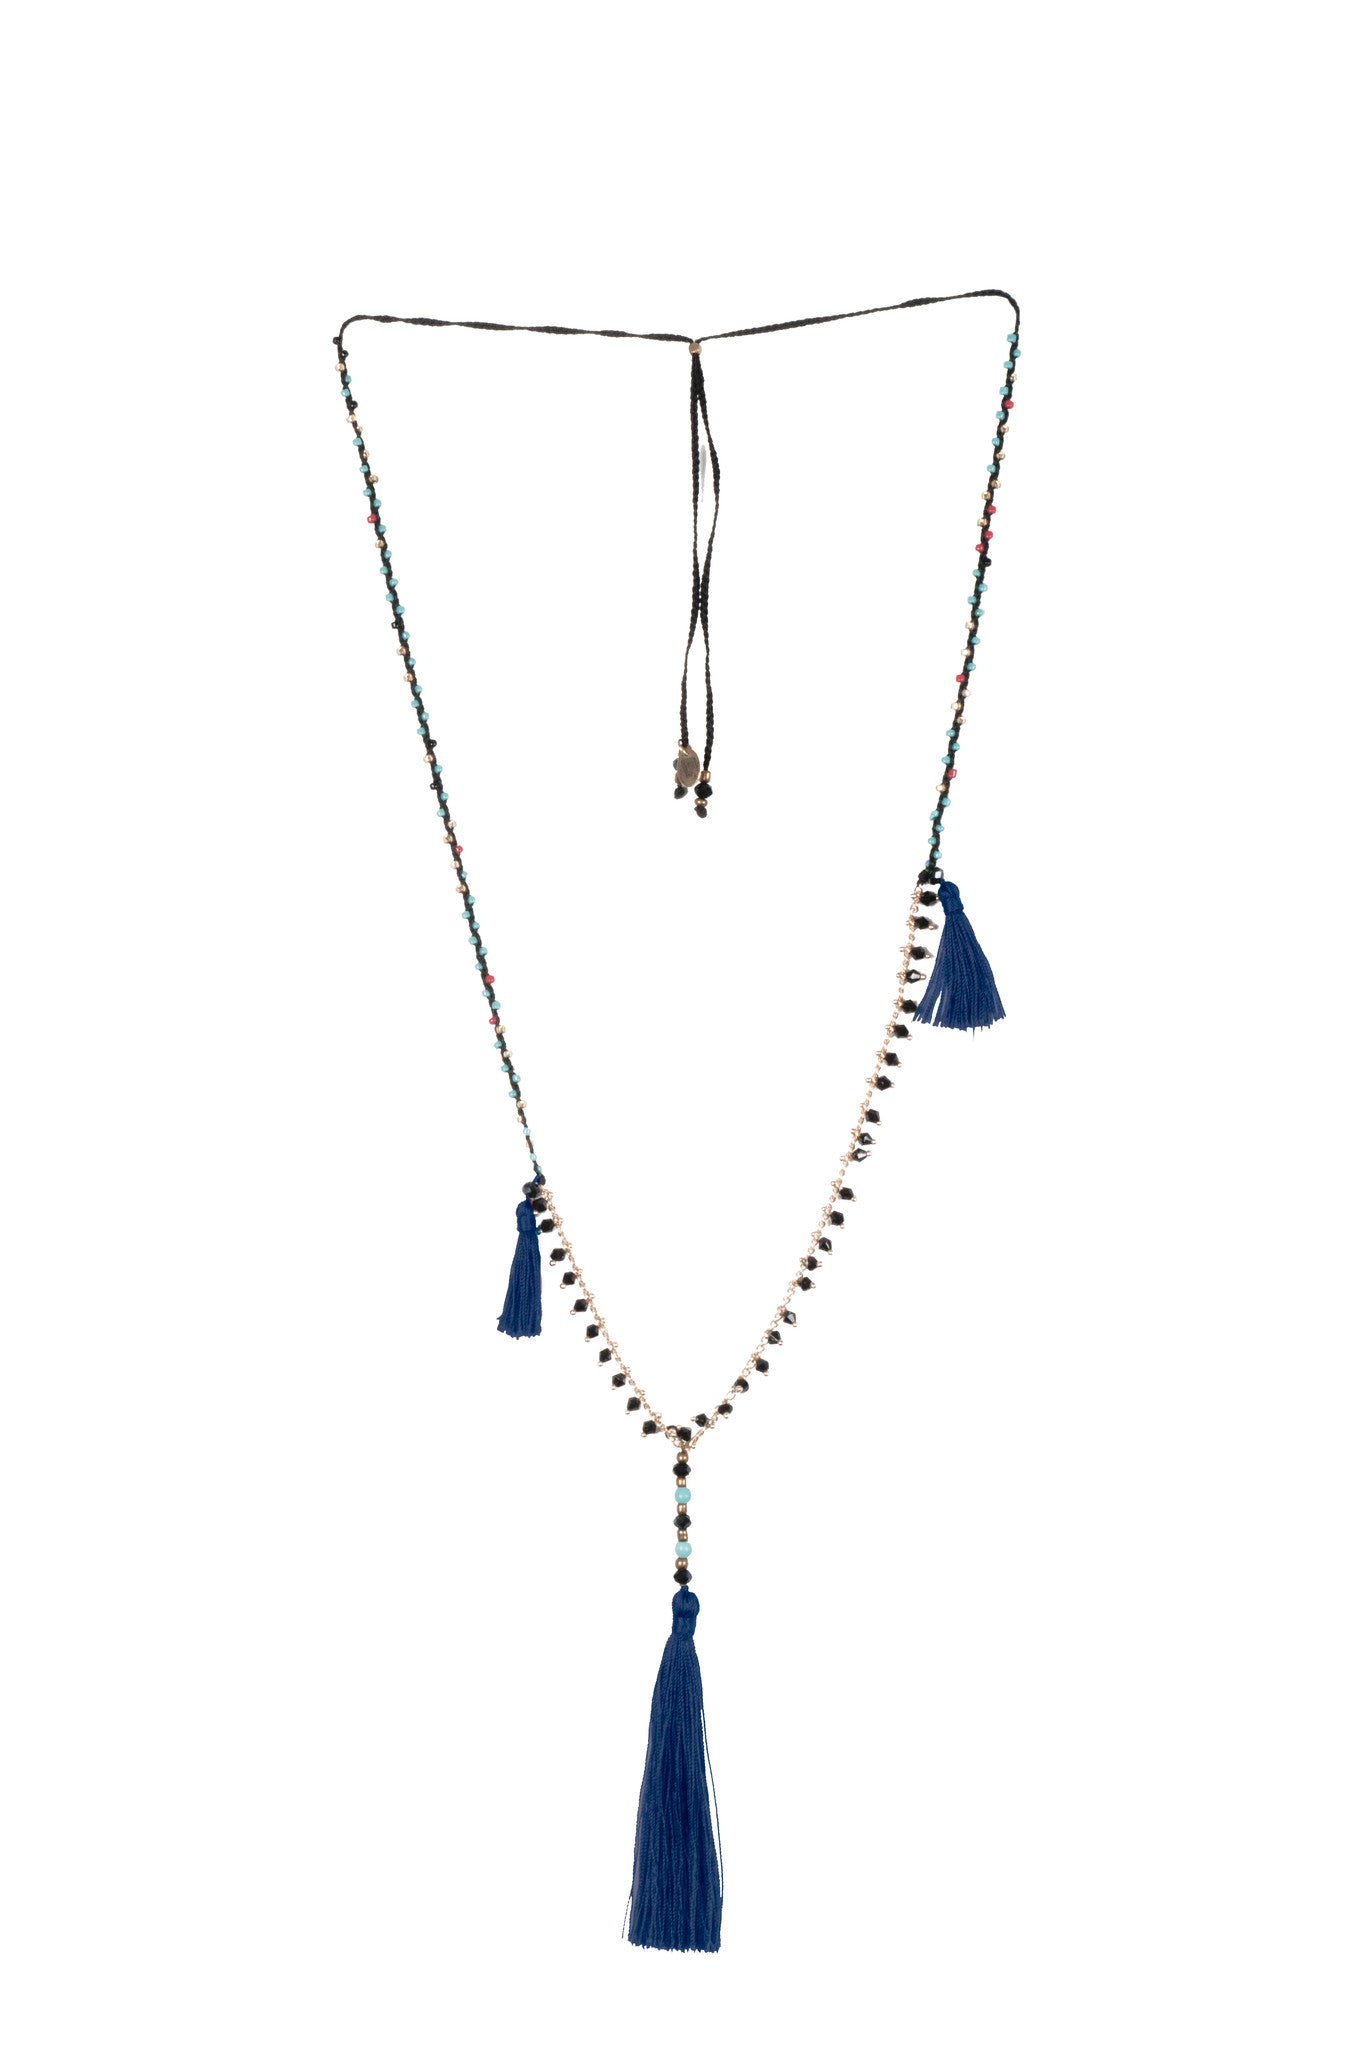 Navy Adjustable Necklace made of delicate crystal pearls, Copper chain completed by three vibrant nylon tassels